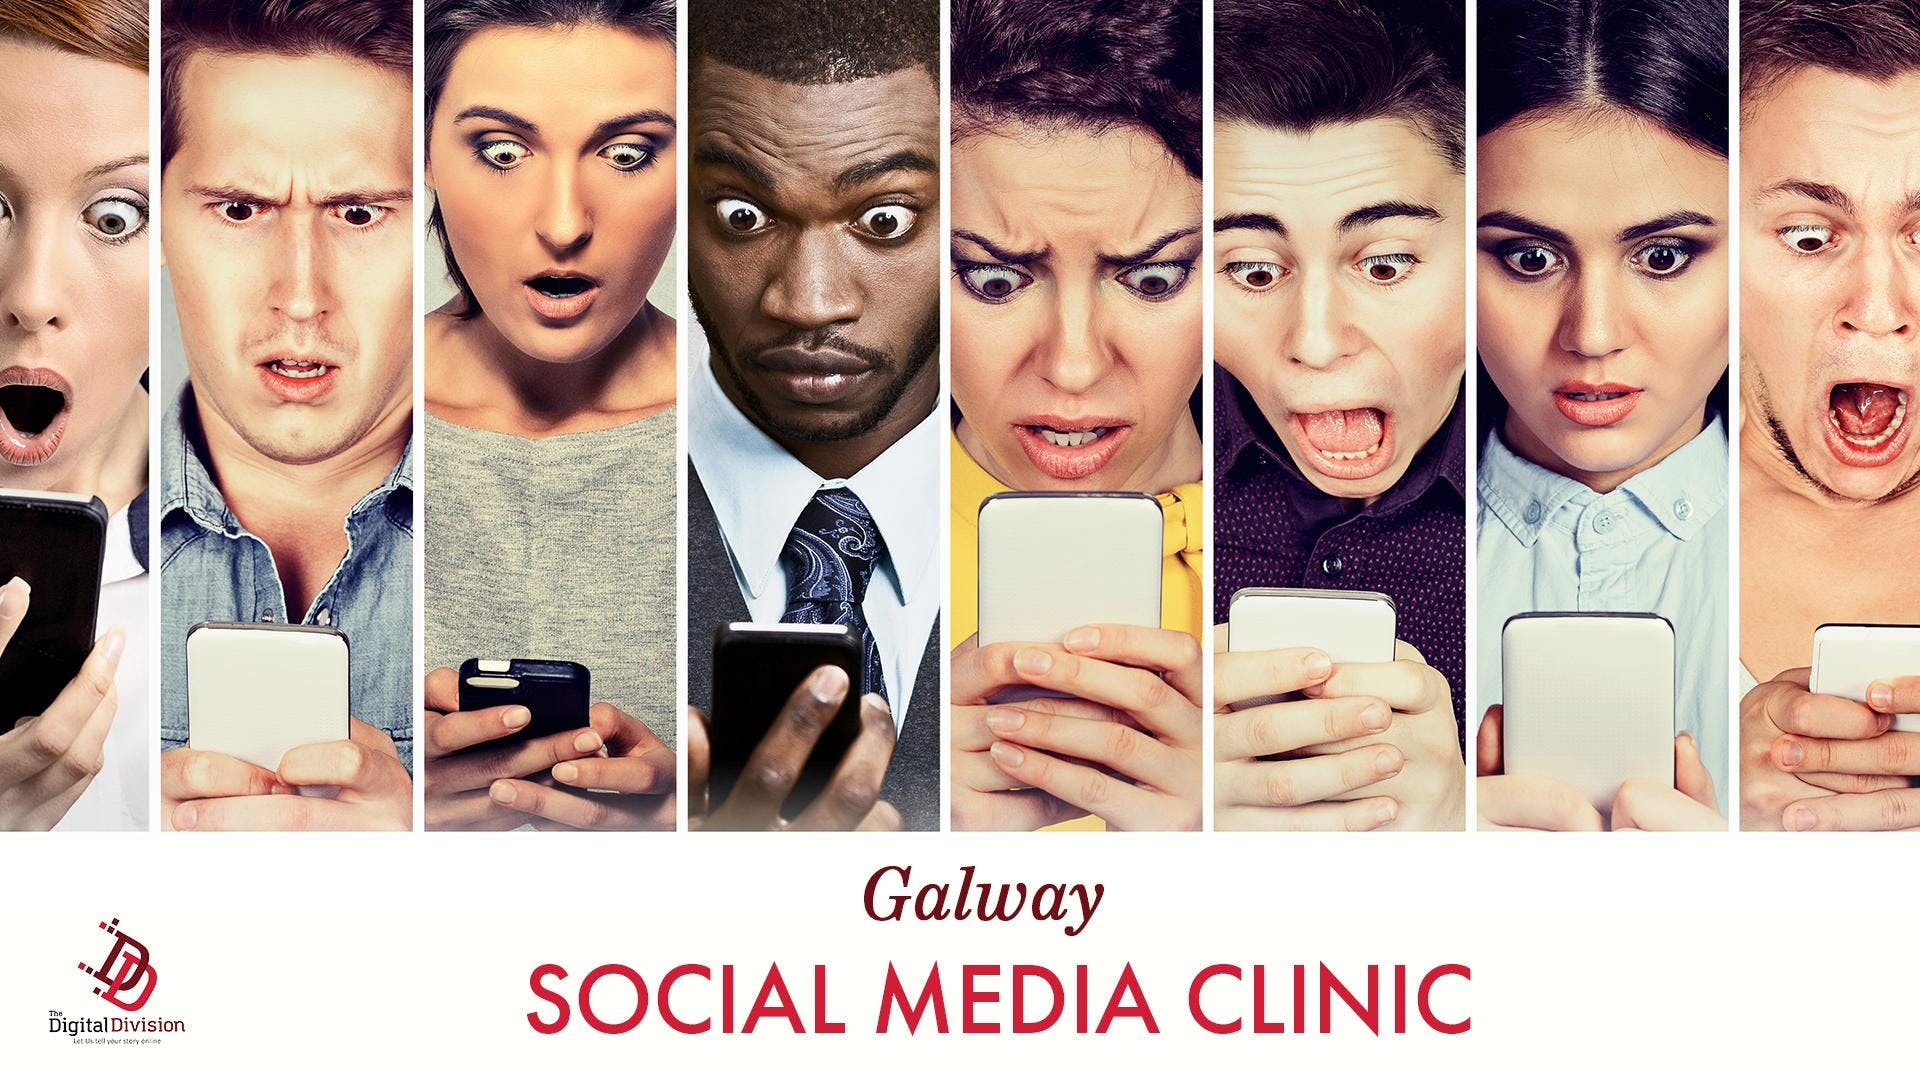 Galway Social Media Clinic - 1 to 1 Consultation